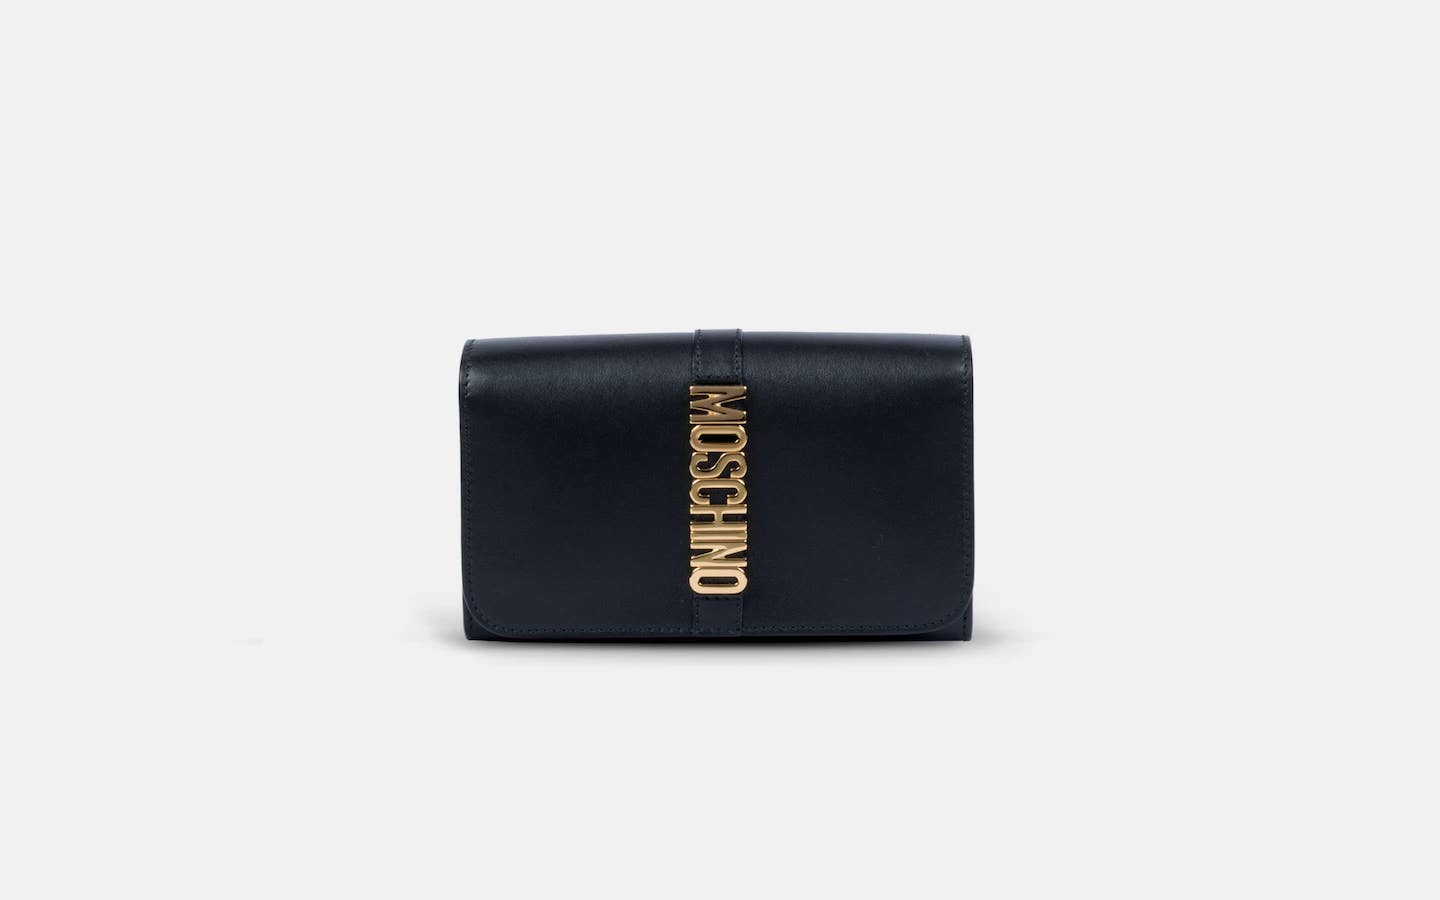 moschino-front-newer-min-min